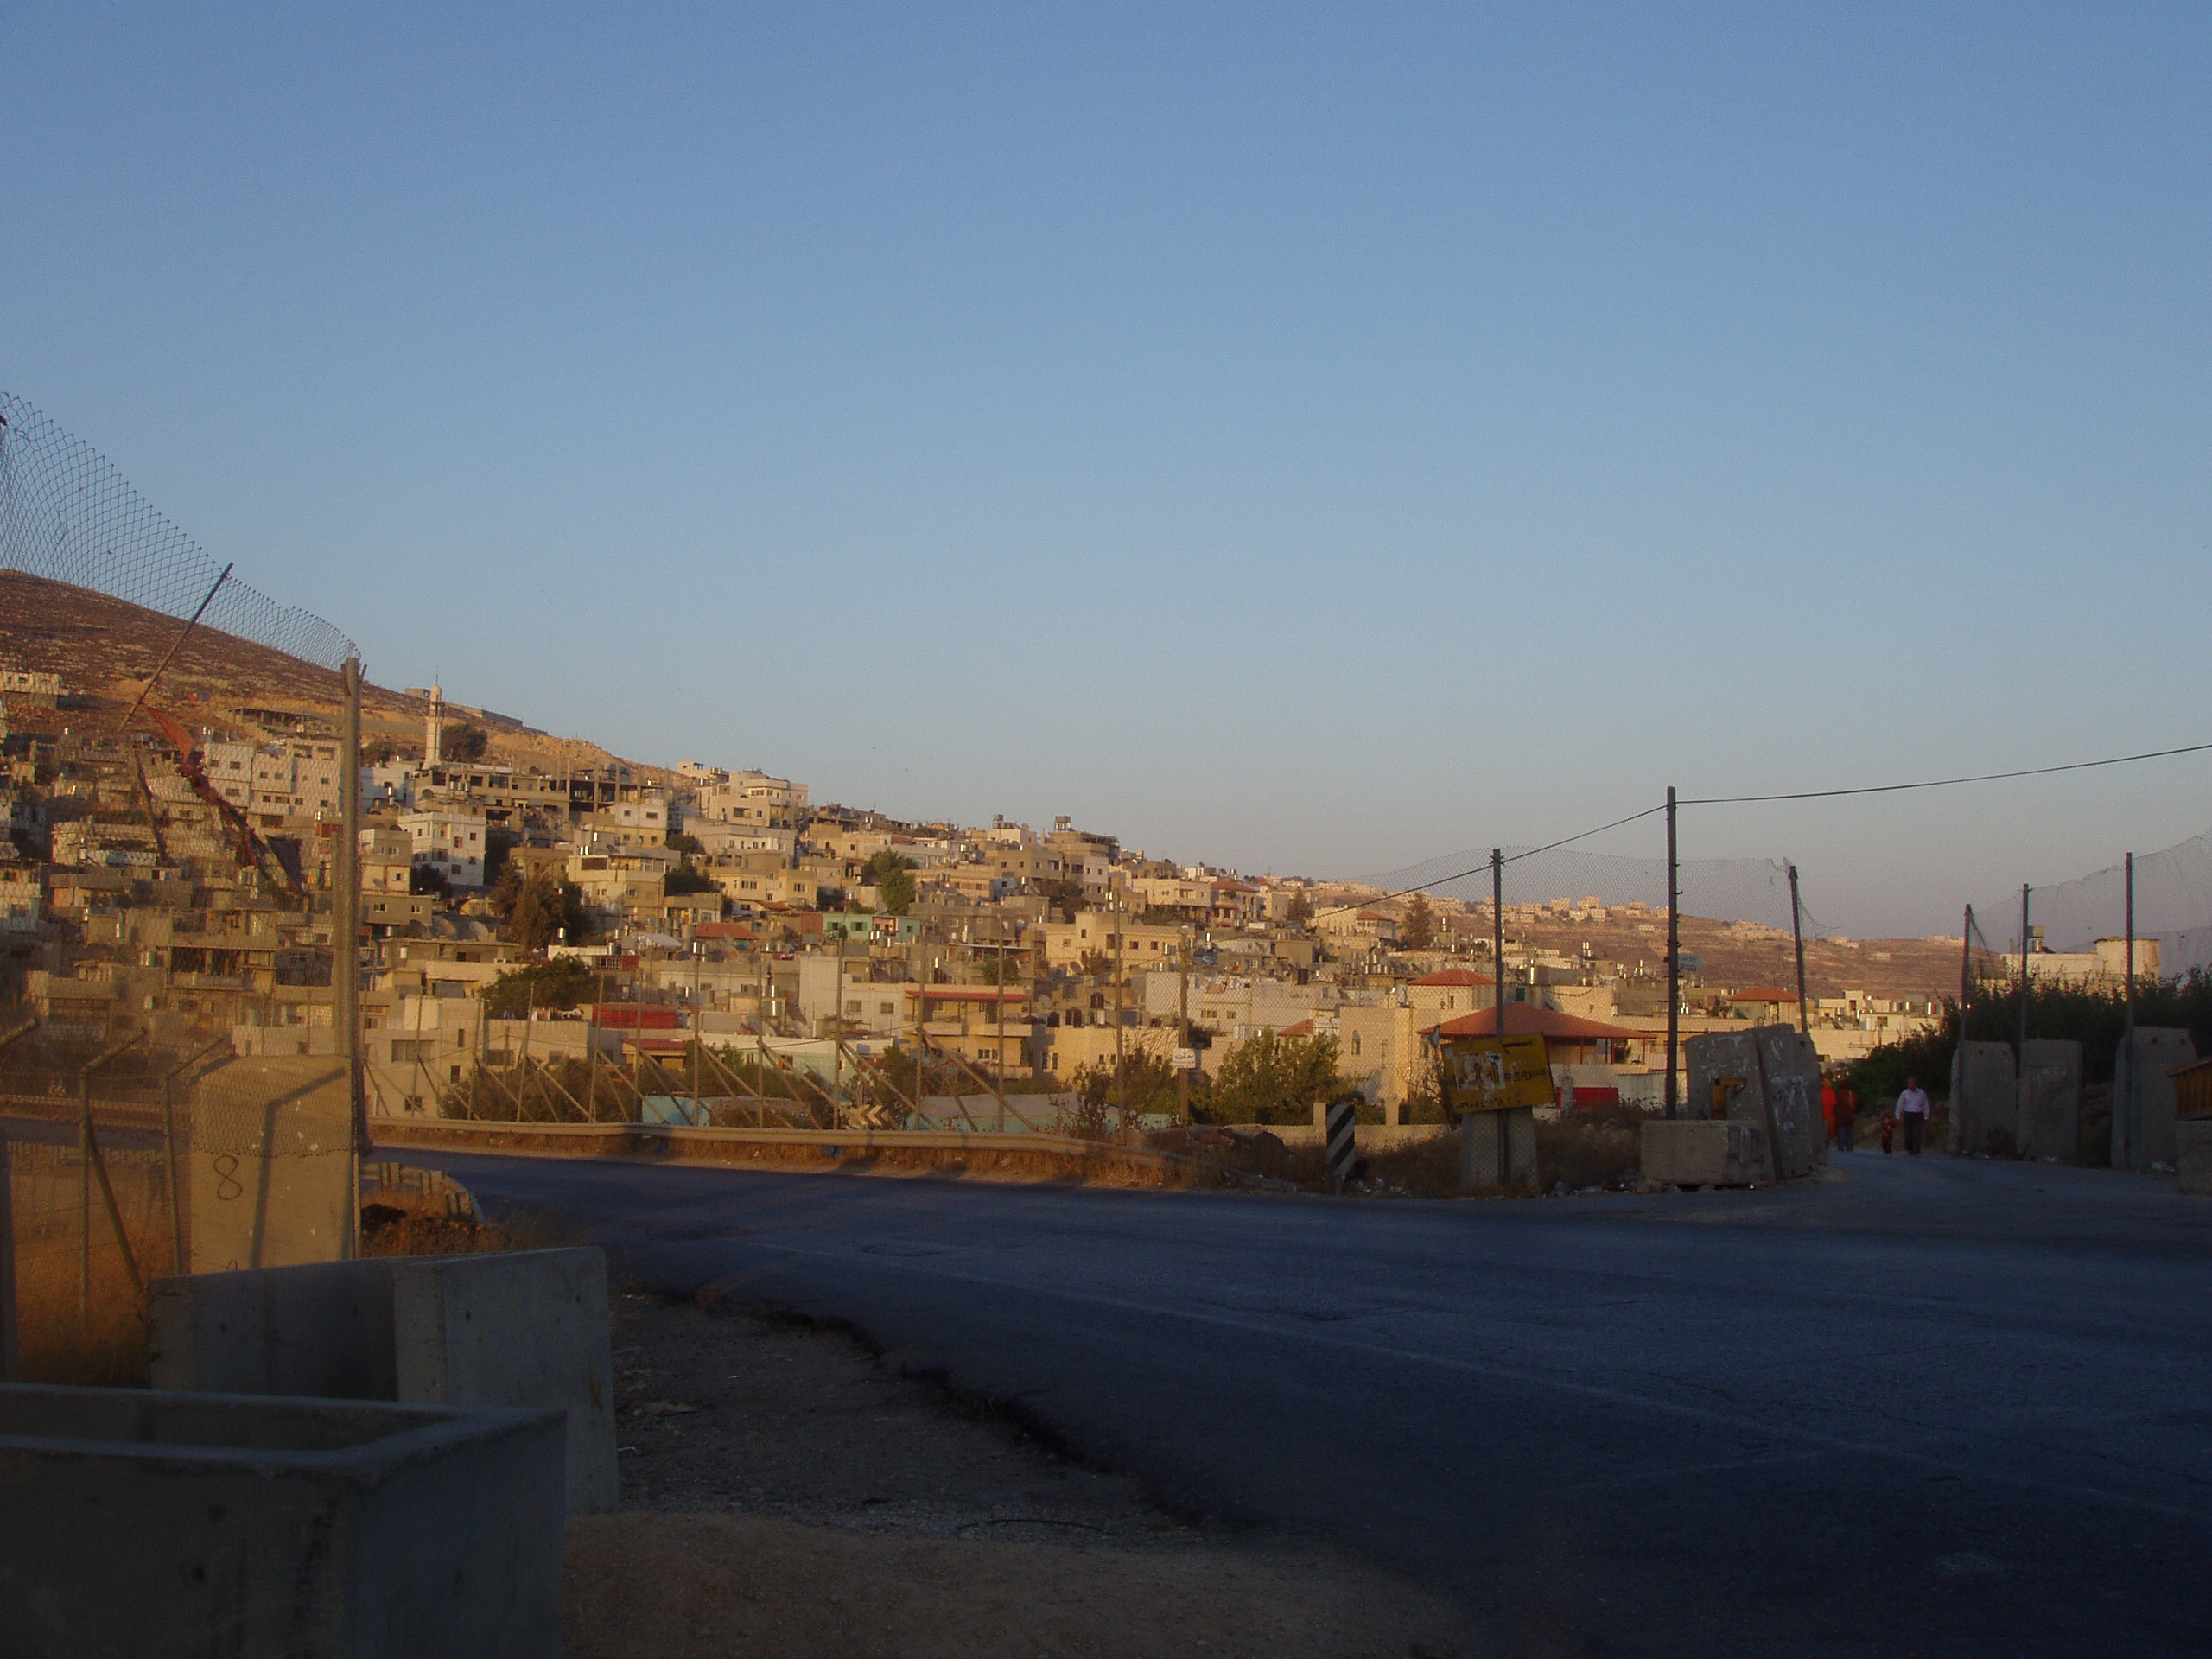 al-'Arrub Refugee Camp - مخيّم العروب : El-Arroub  Entrance from the main road to Hebron